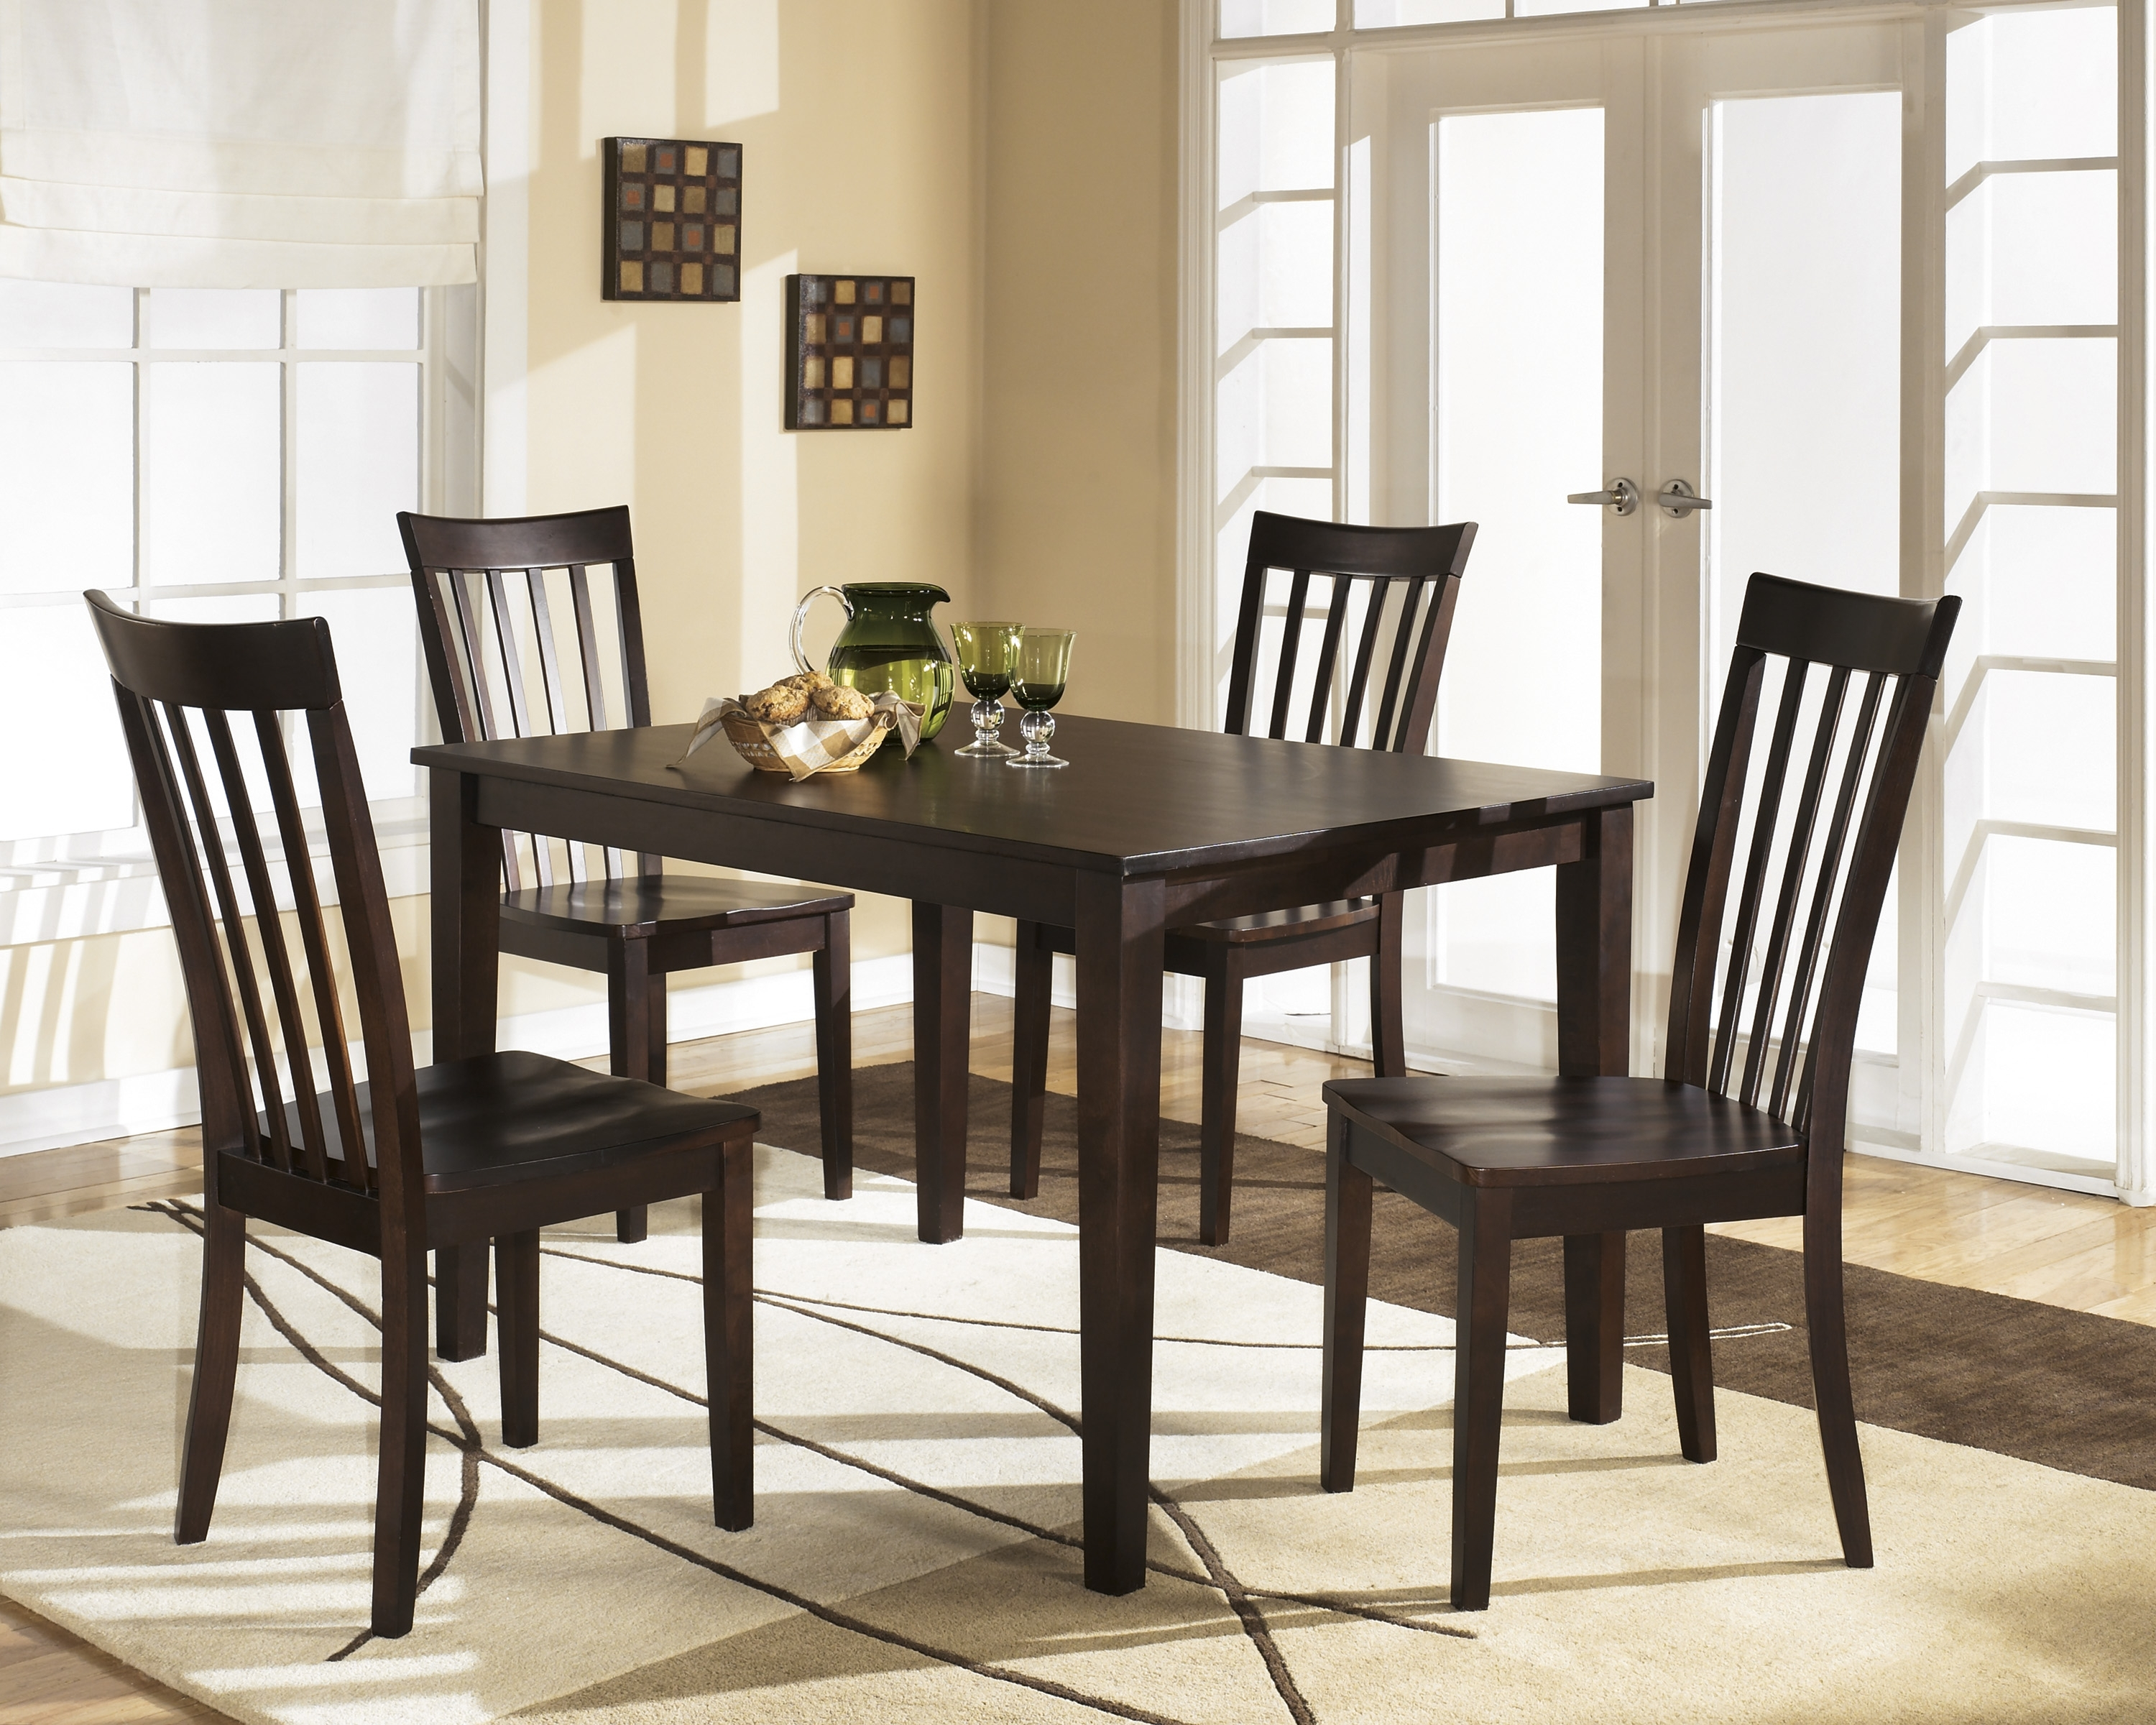 Most Recent Palazzo 6 Piece Dining Sets With Pearson Grey Side Chairs Inside Https://www.localfurnitureoutlet/mattresses (View 24 of 25)